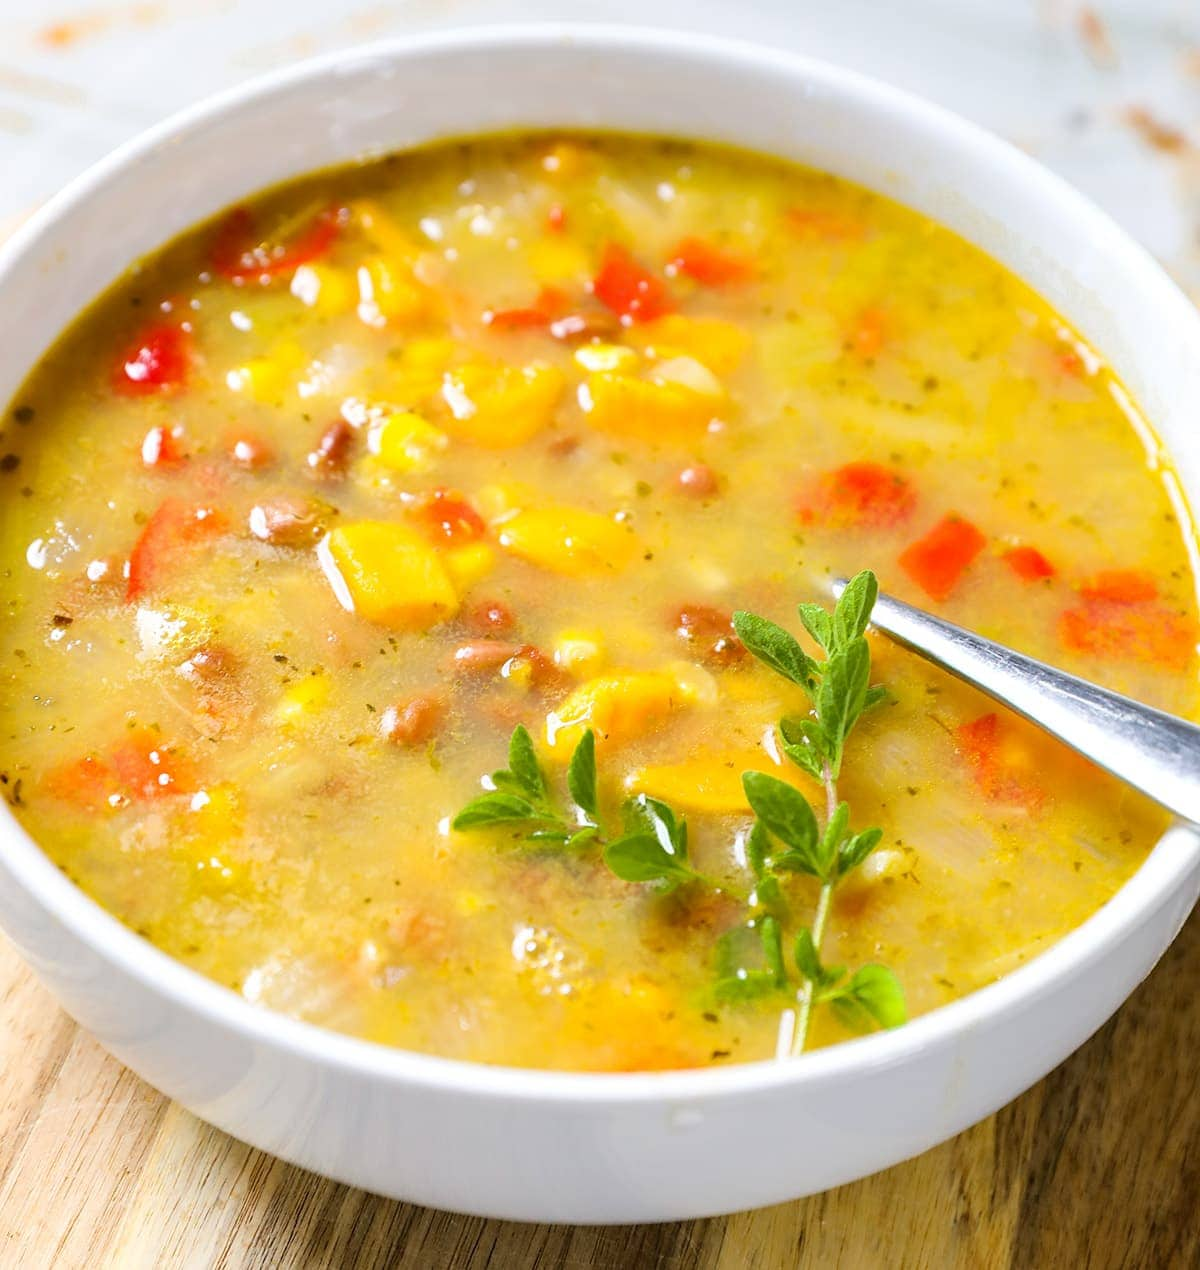 Close up view of pinto bean soup